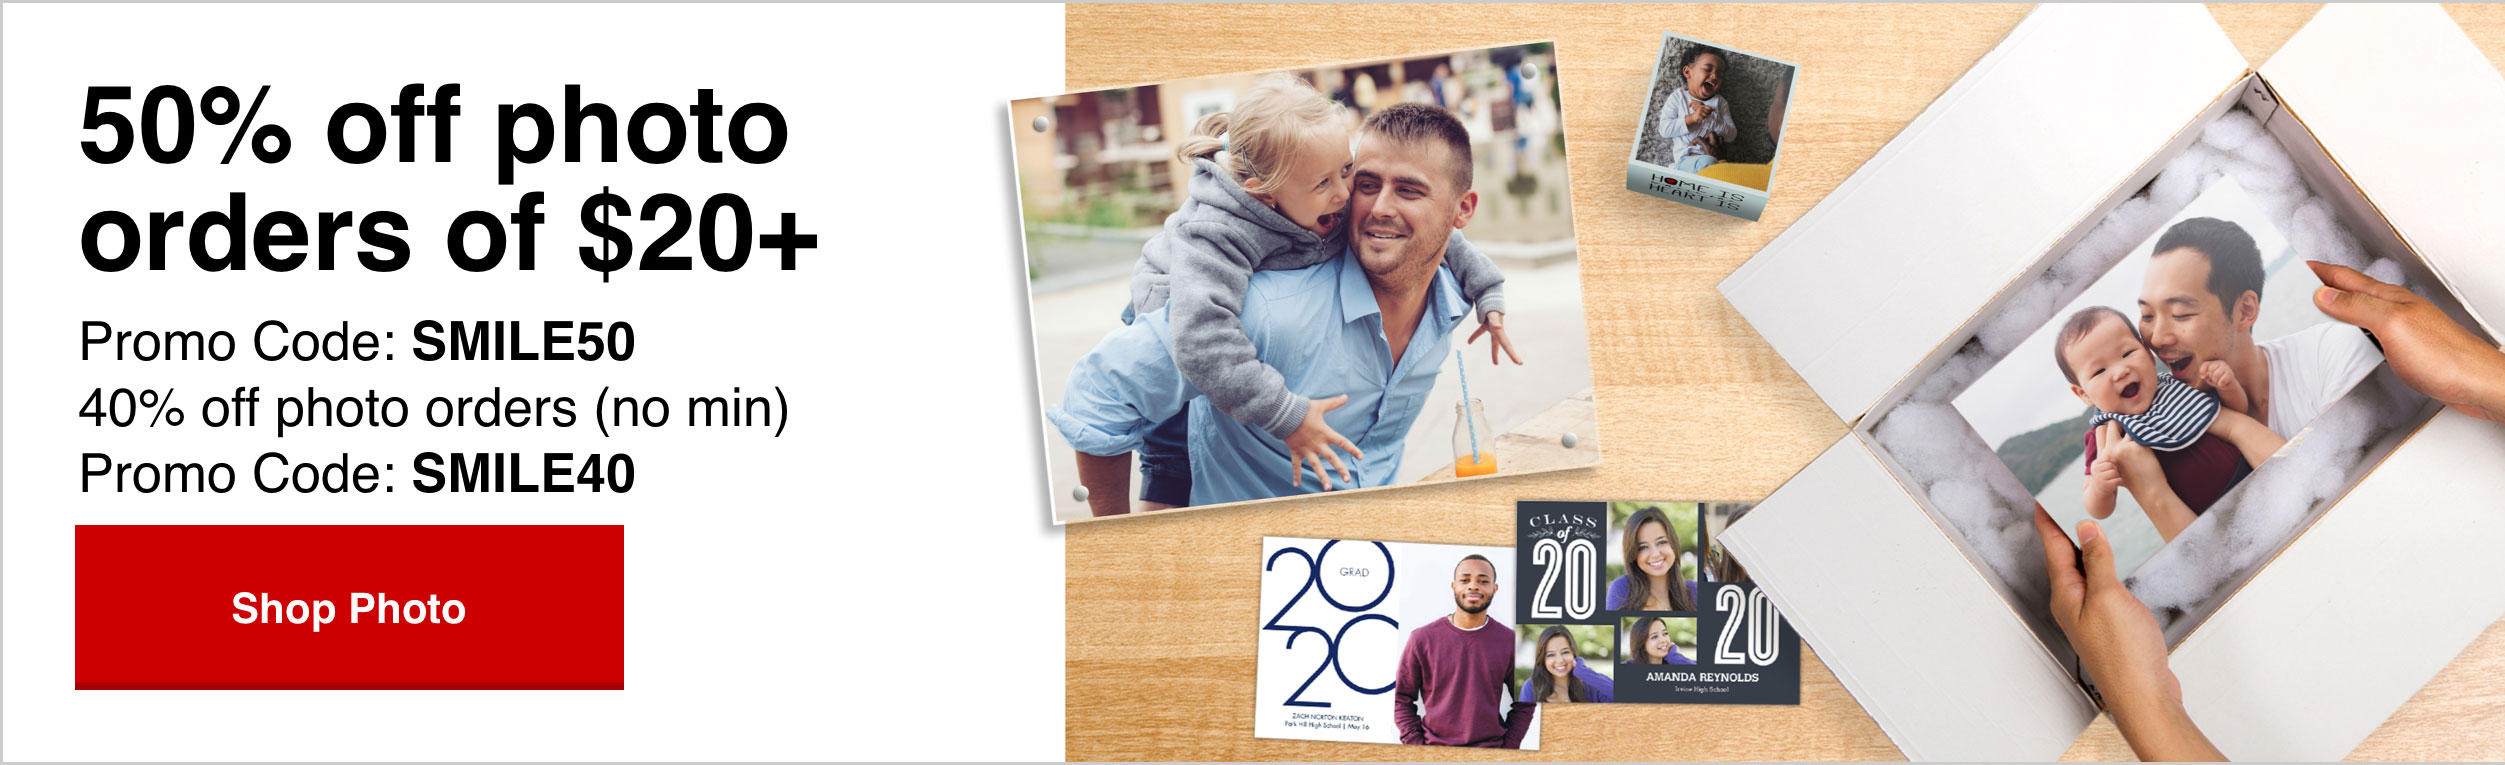 50% off Photo orders of $20 or more with Promo Code: WOW50  OR 40% off Photo Orders with Promo Code: SMILE40  Offers end 5/30/20.